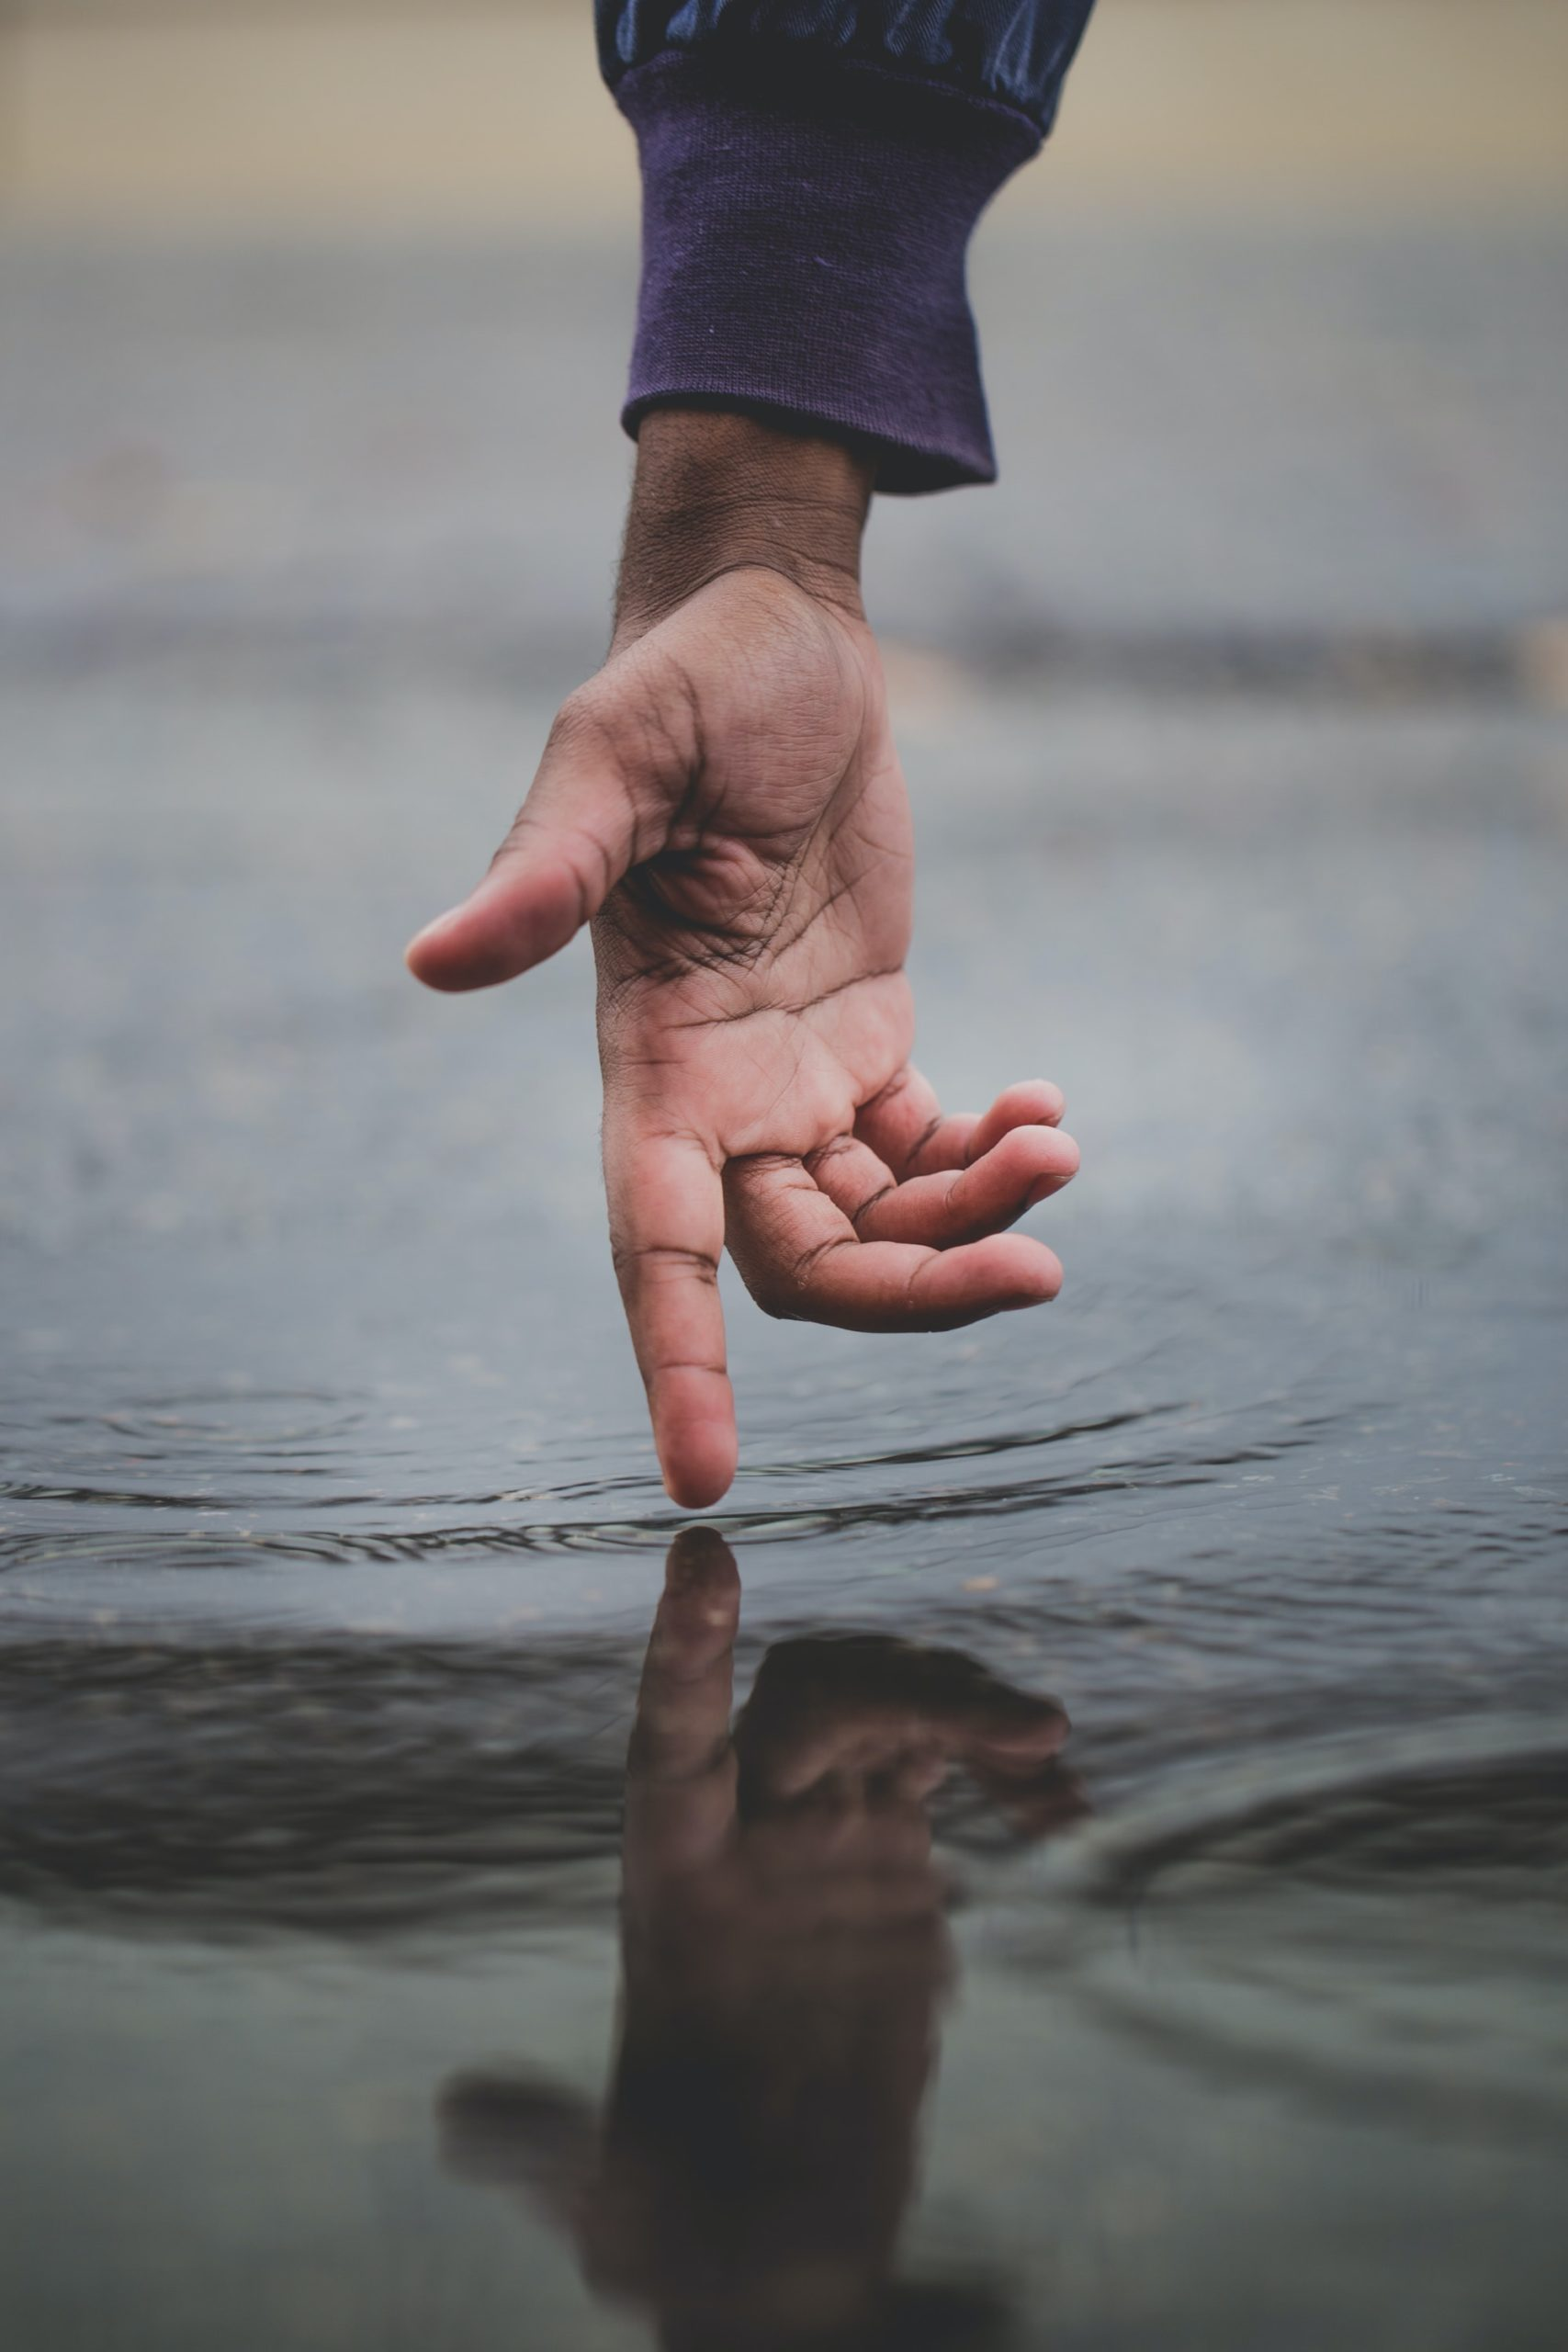 person touching body of water and creating ripples